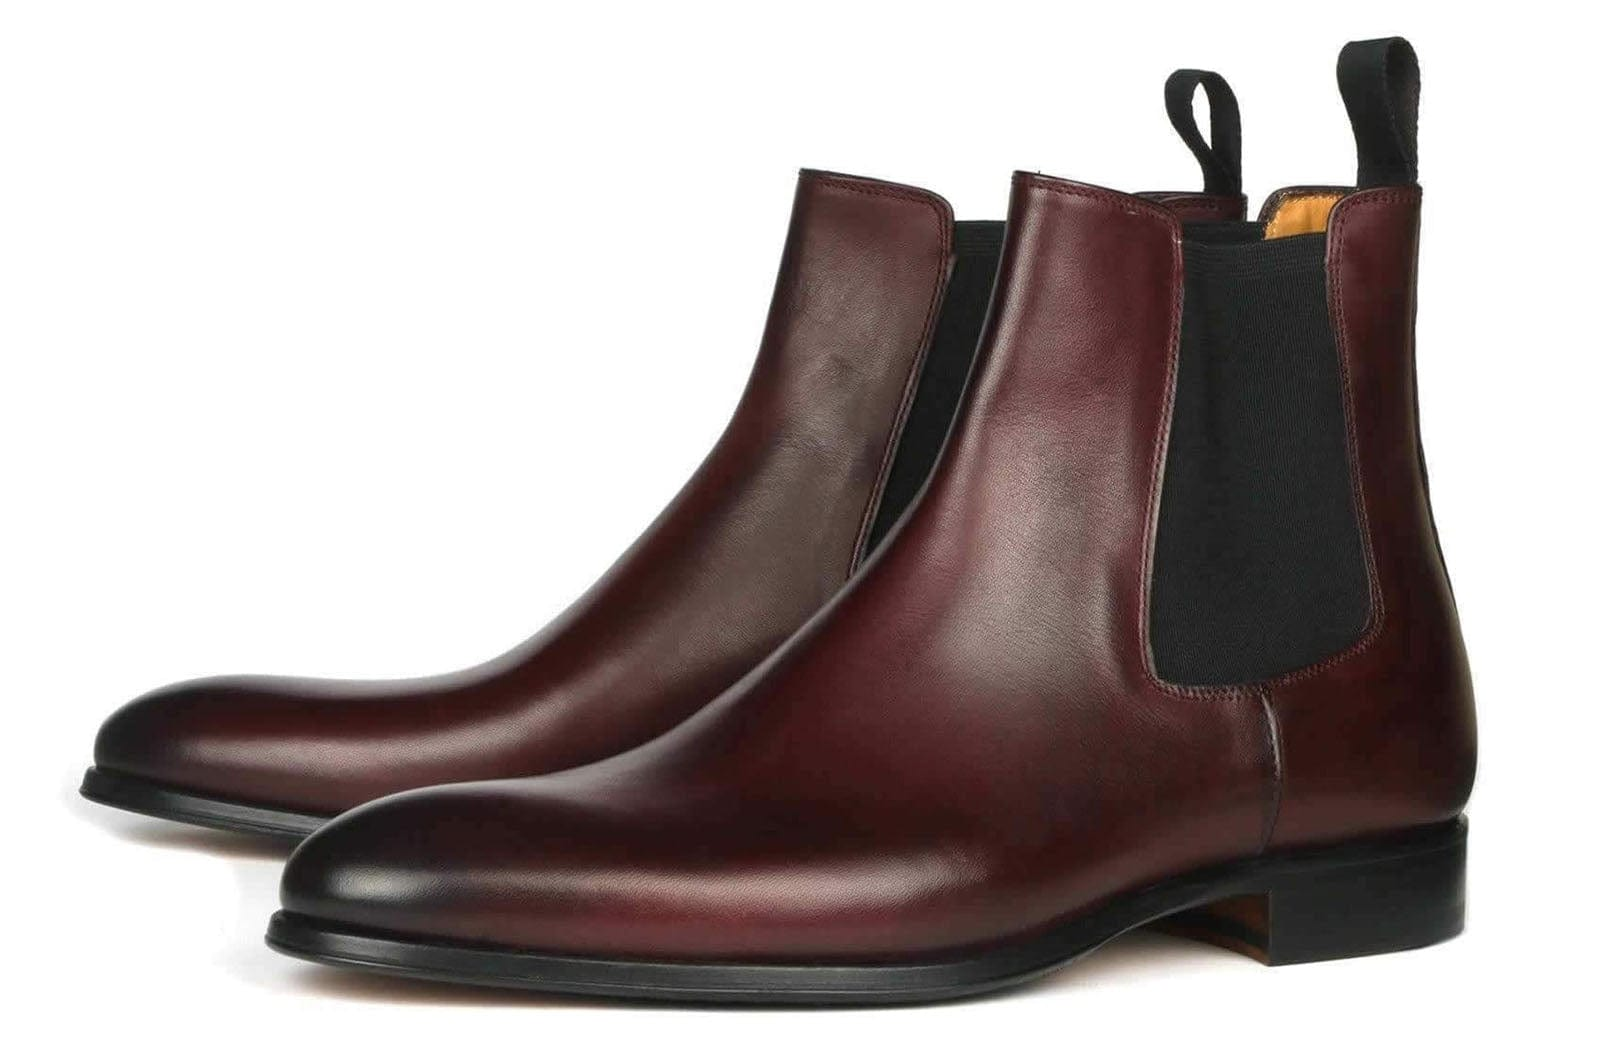 Eastwood Chelsea Boot - Oxblood Burgundy